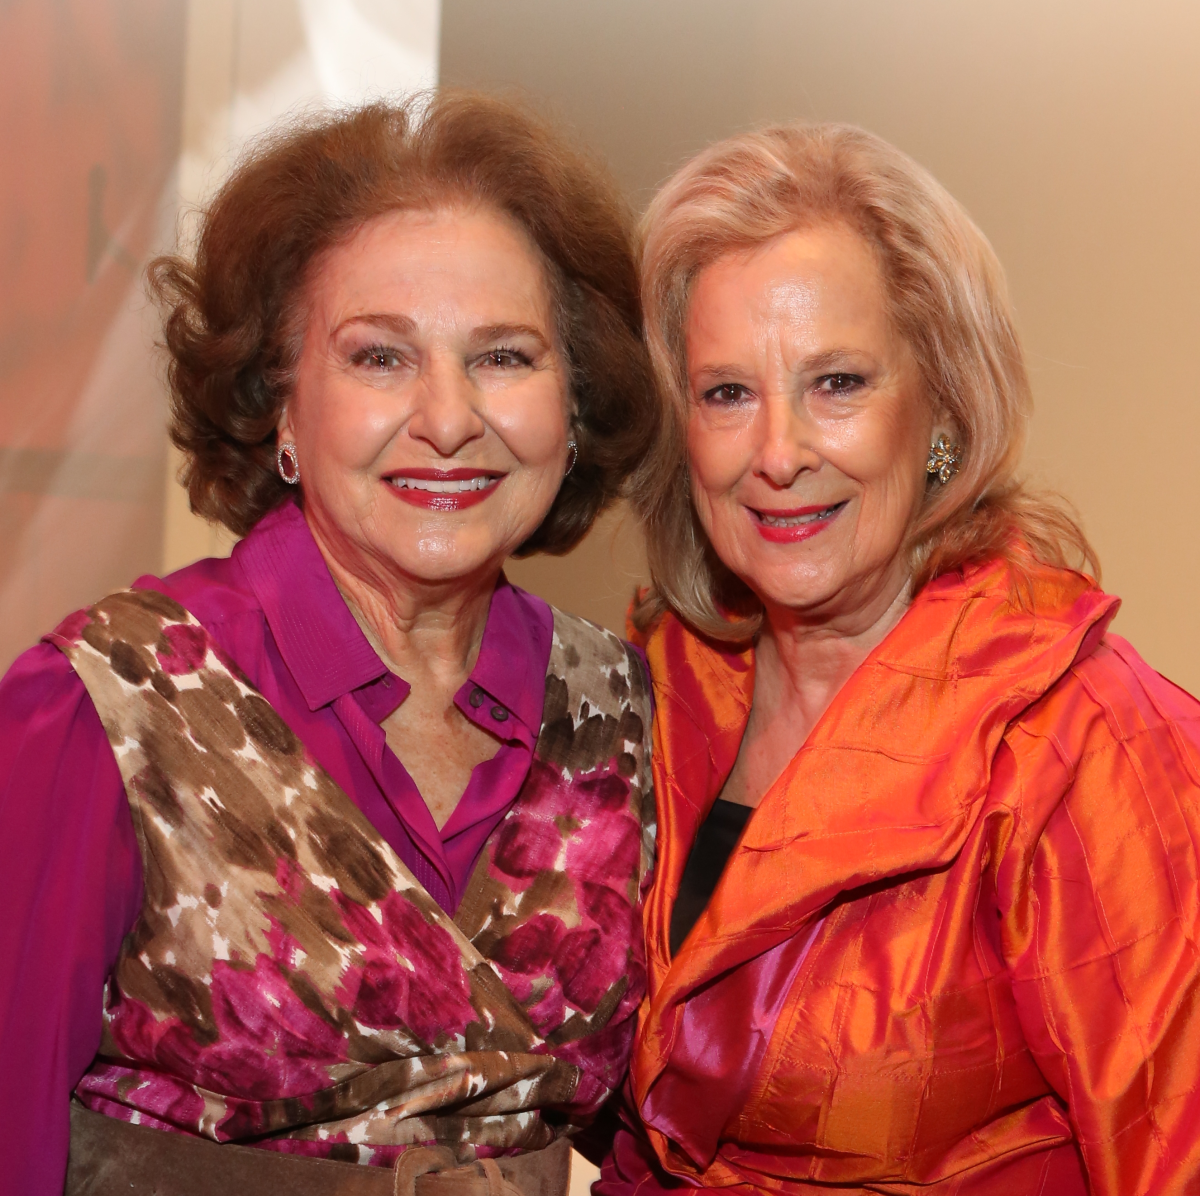 News, Shelby, Stiletto Strut, Sept. 2015 Joann Crassas, Mary Ann McKeithan